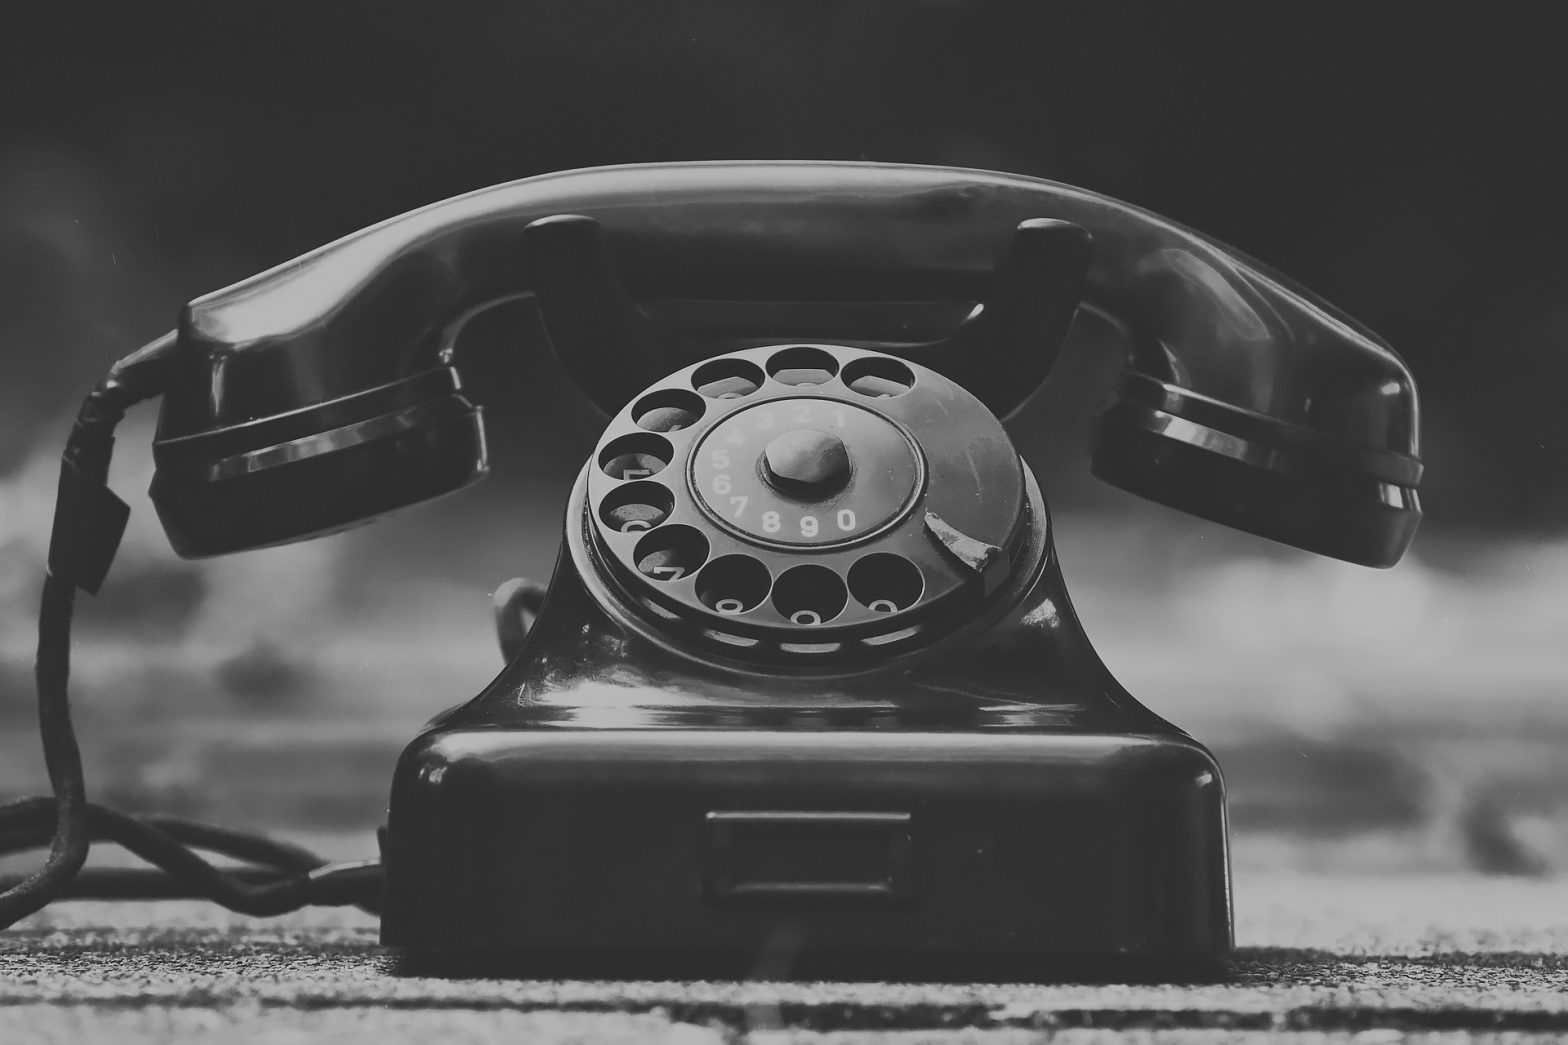 Pixabay - an old rotary phone in a spooky yesterworld